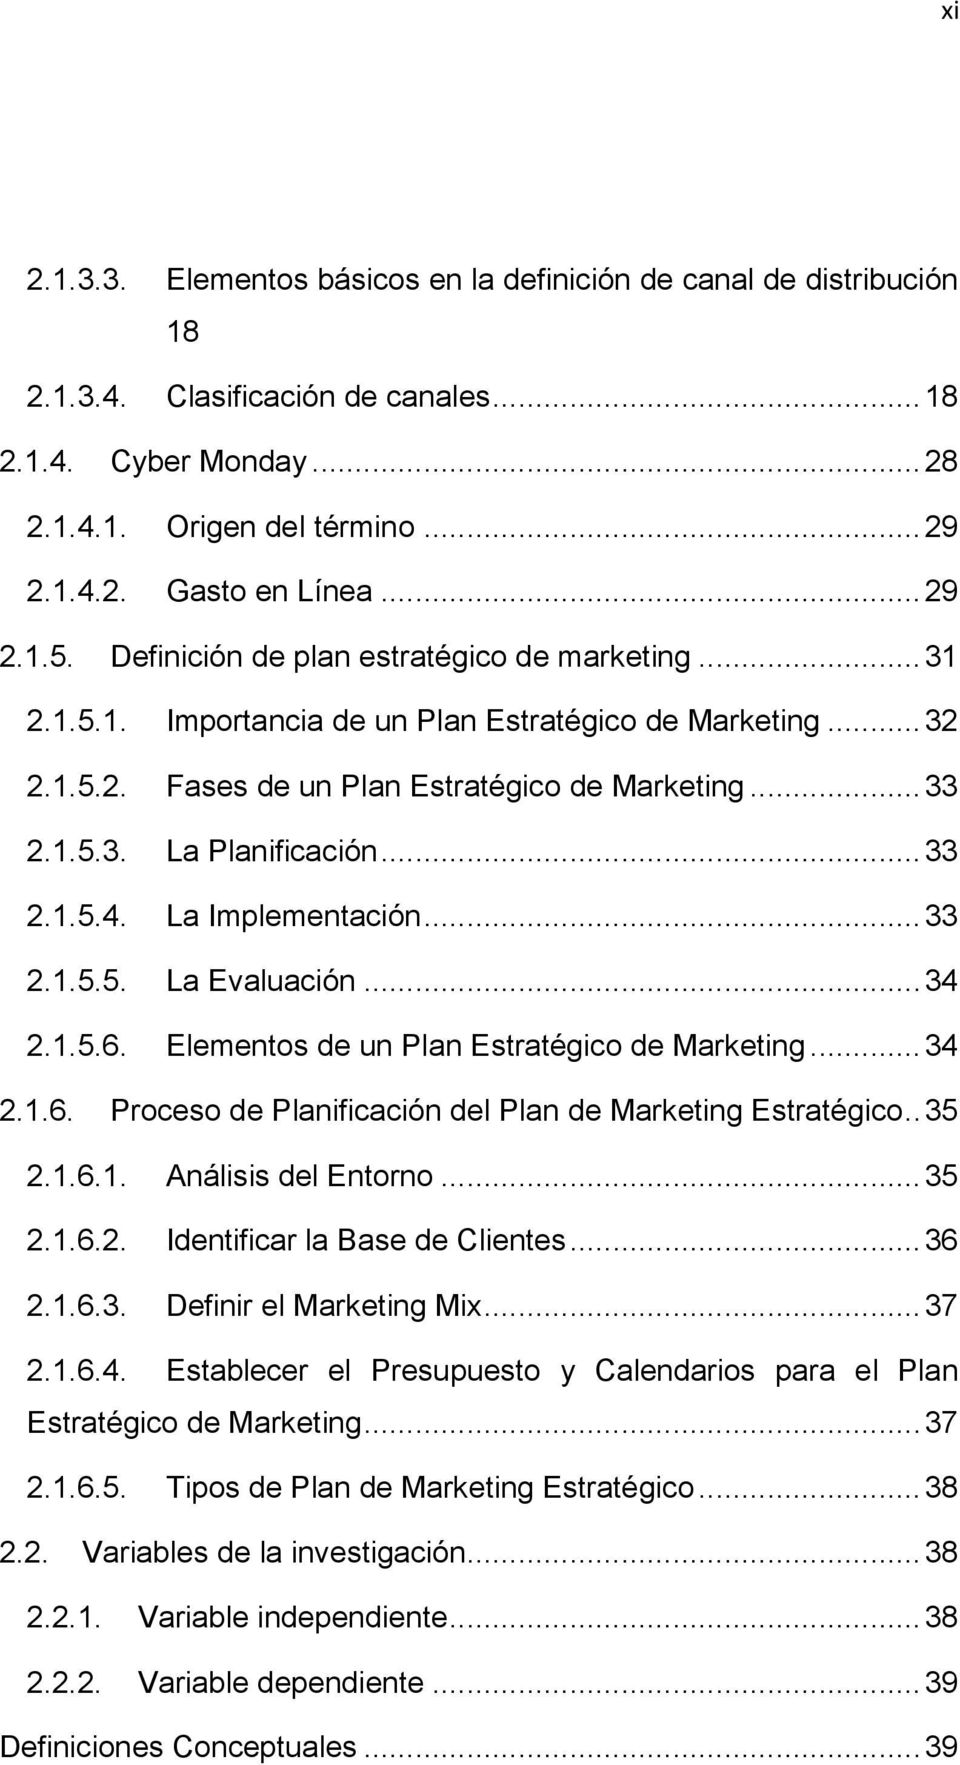 .. 33 2.1.5.4. La Implementación... 33 2.1.5.5. La Evaluación... 34 2.1.5.6. Elementos de un Plan Estratégico de Marketing... 34 2.1.6. Proceso de Planificación del Plan de Marketing Estratégico.